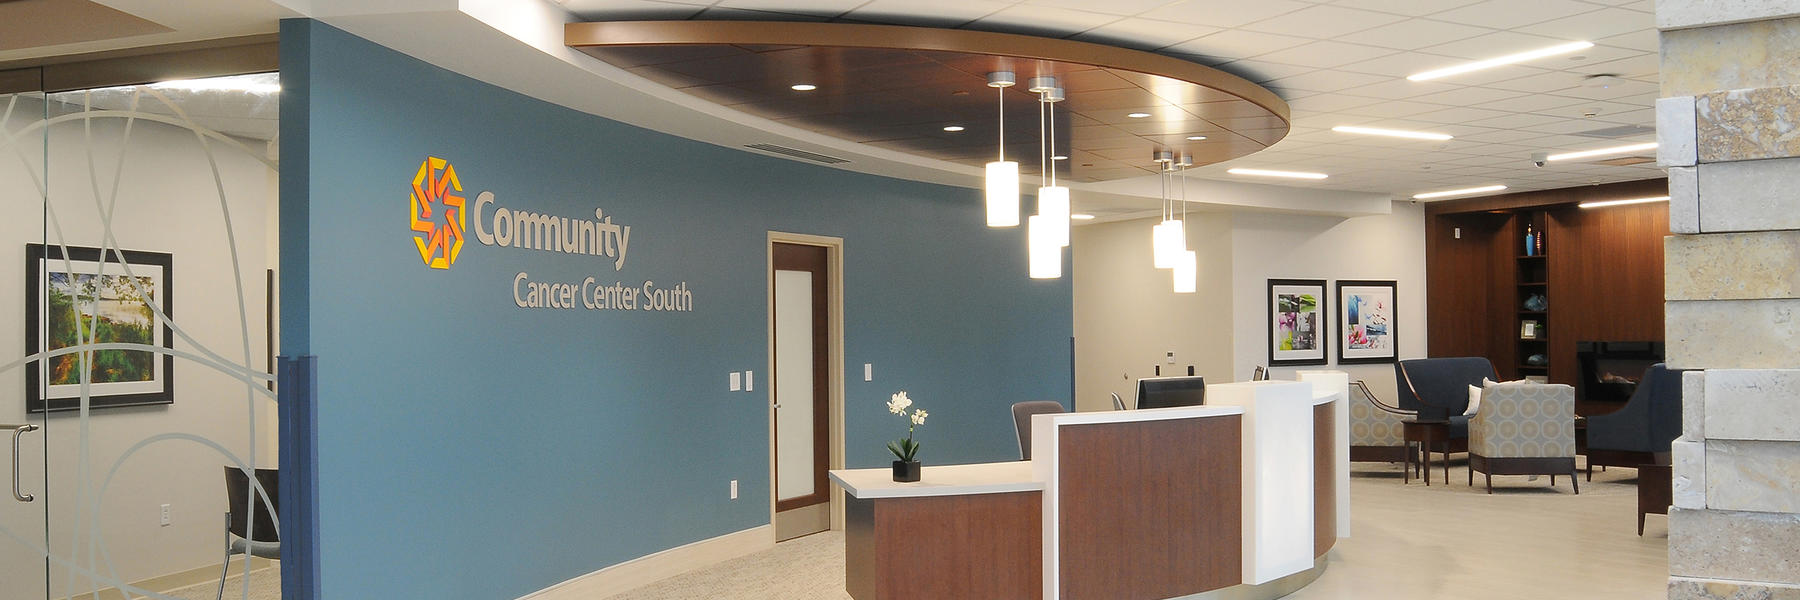 Community South Cancer Center